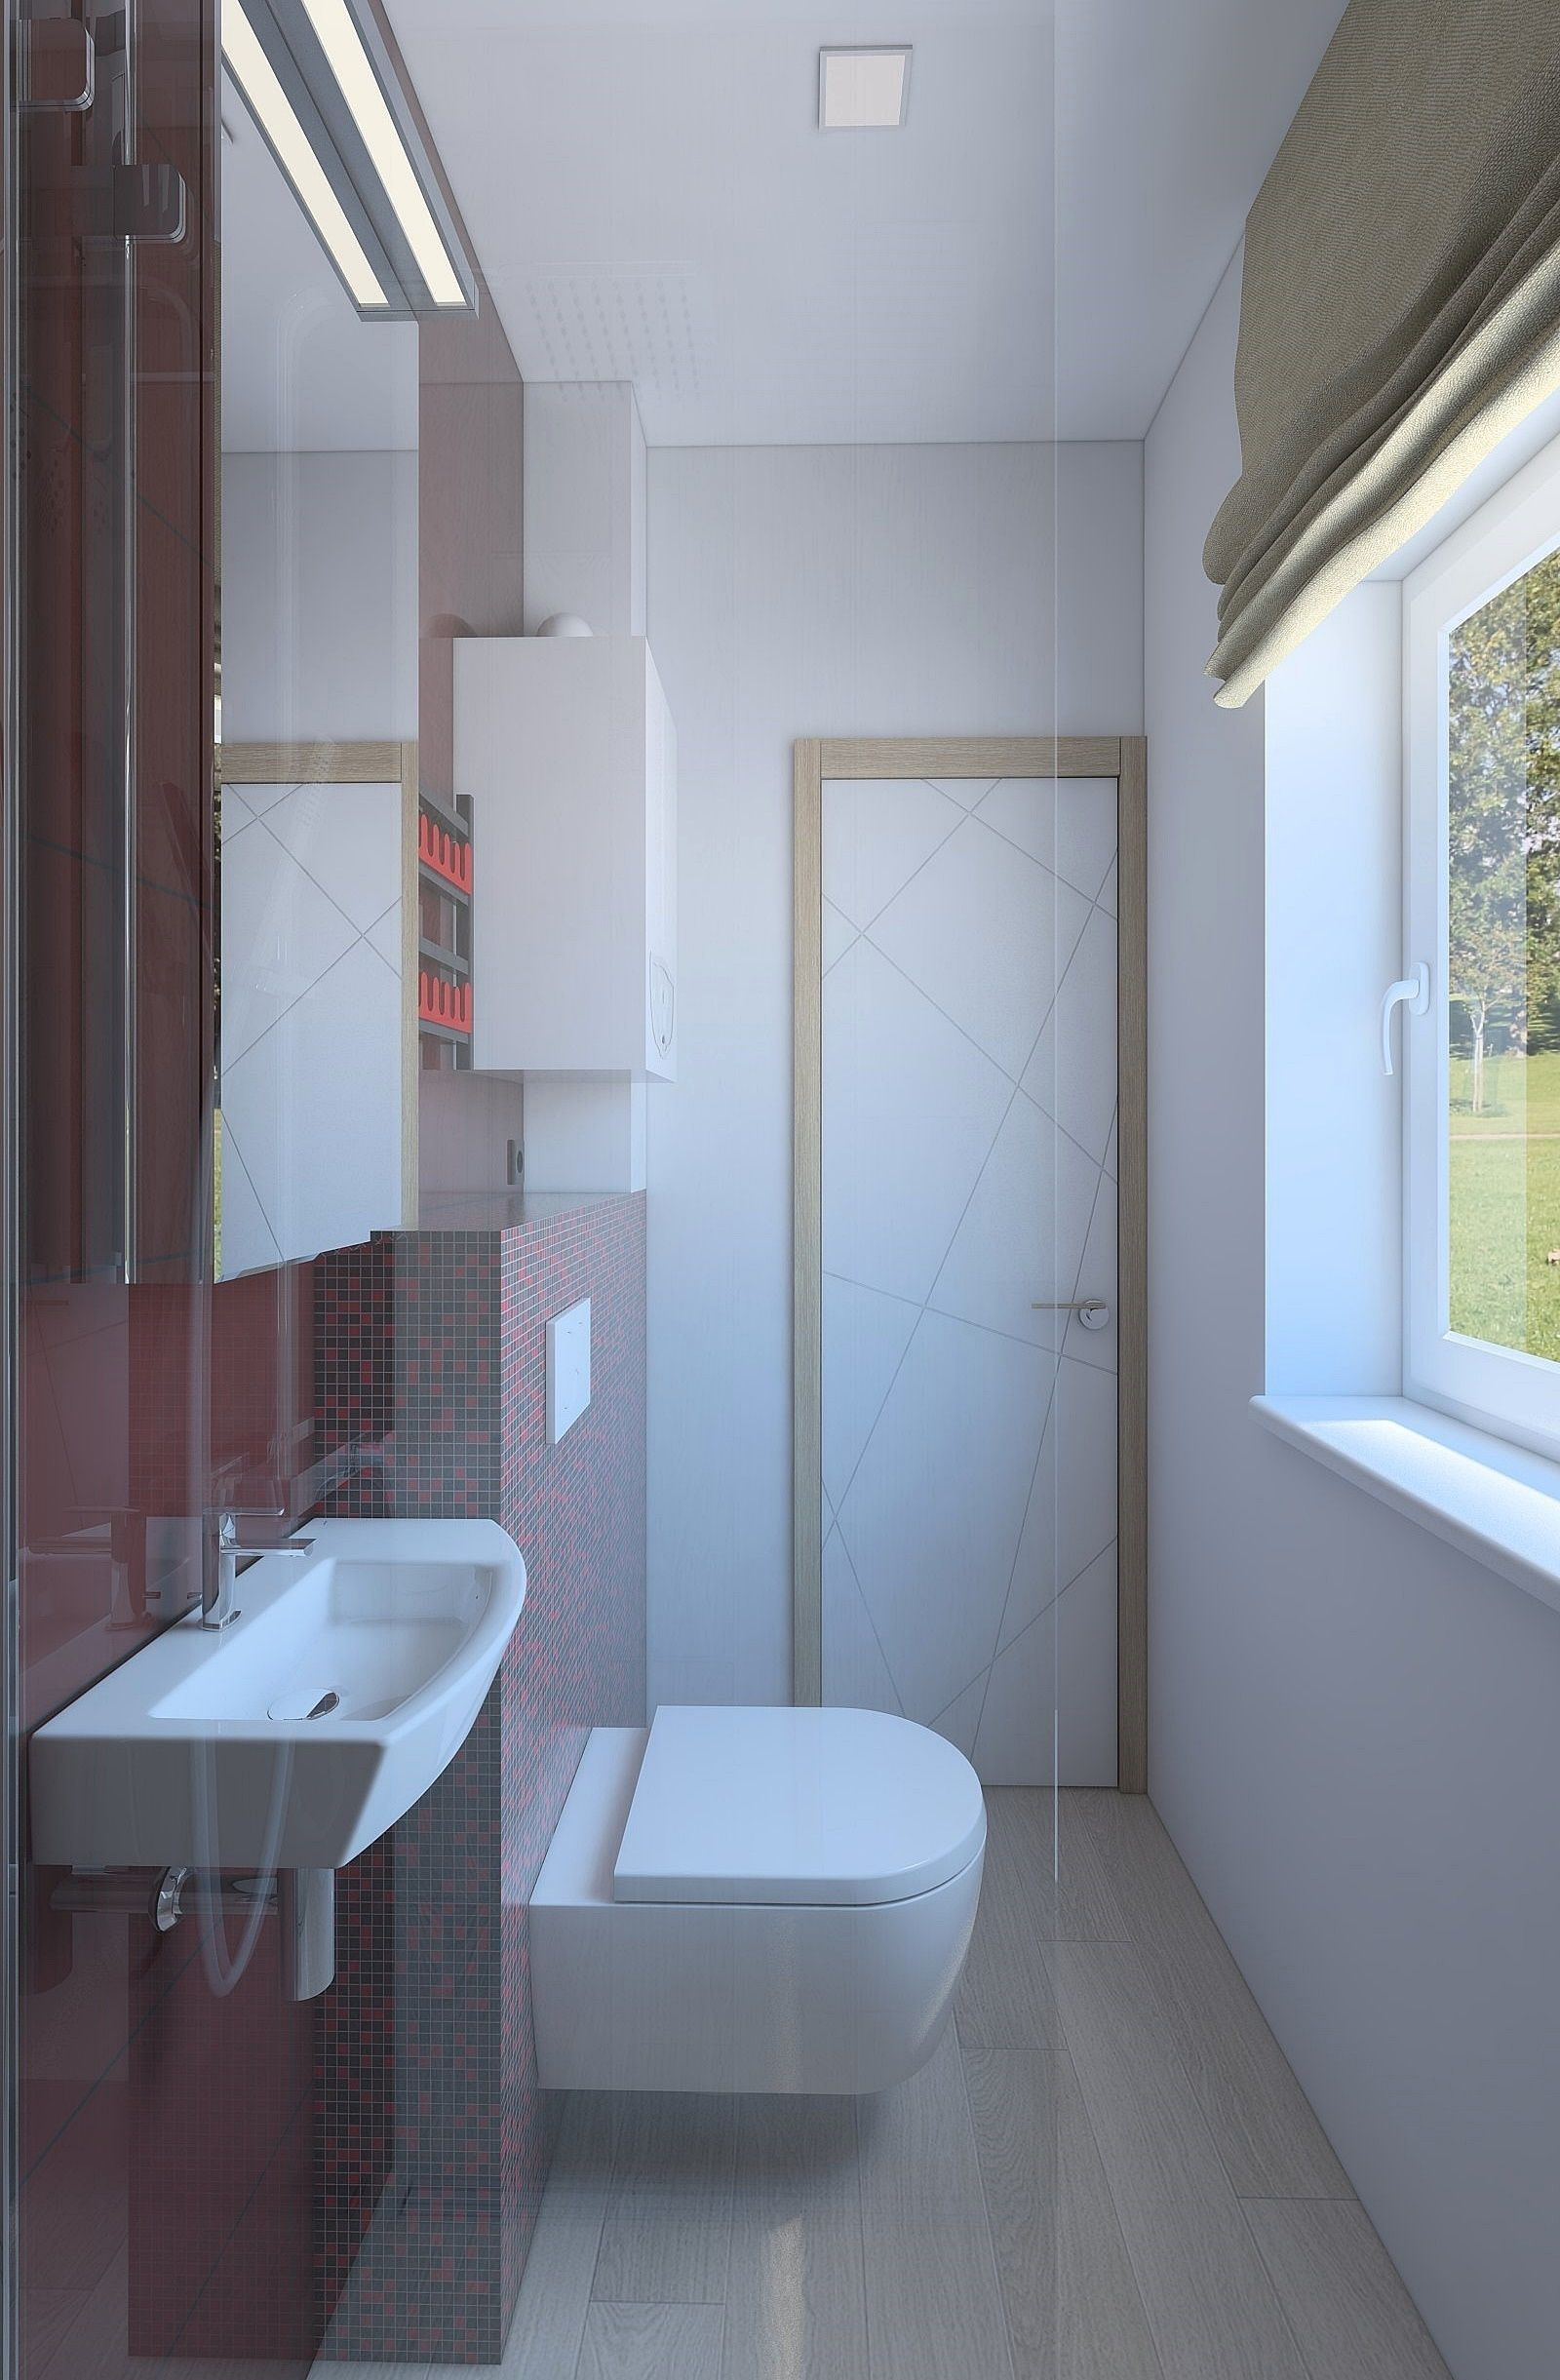 3D Small shower room with red tiles | CGTrader